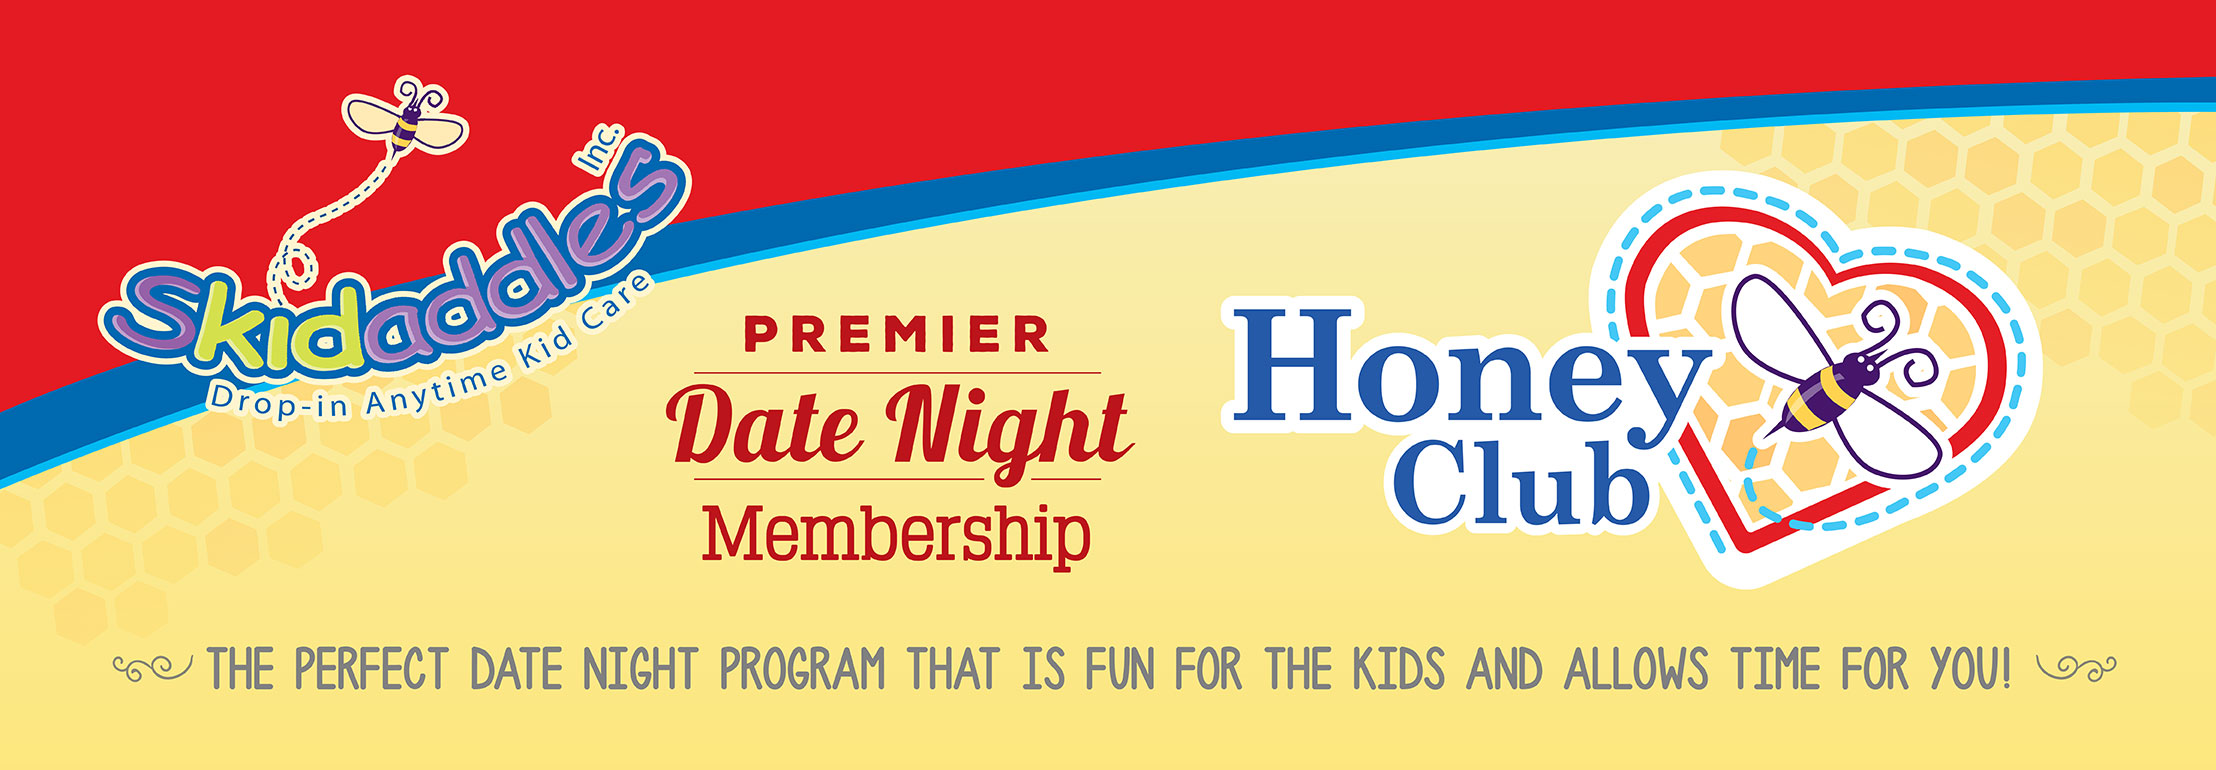 Honey Club:  Skidaddles premier date night membership.  The perfect date night program that is fun for the kids and allows time for you!